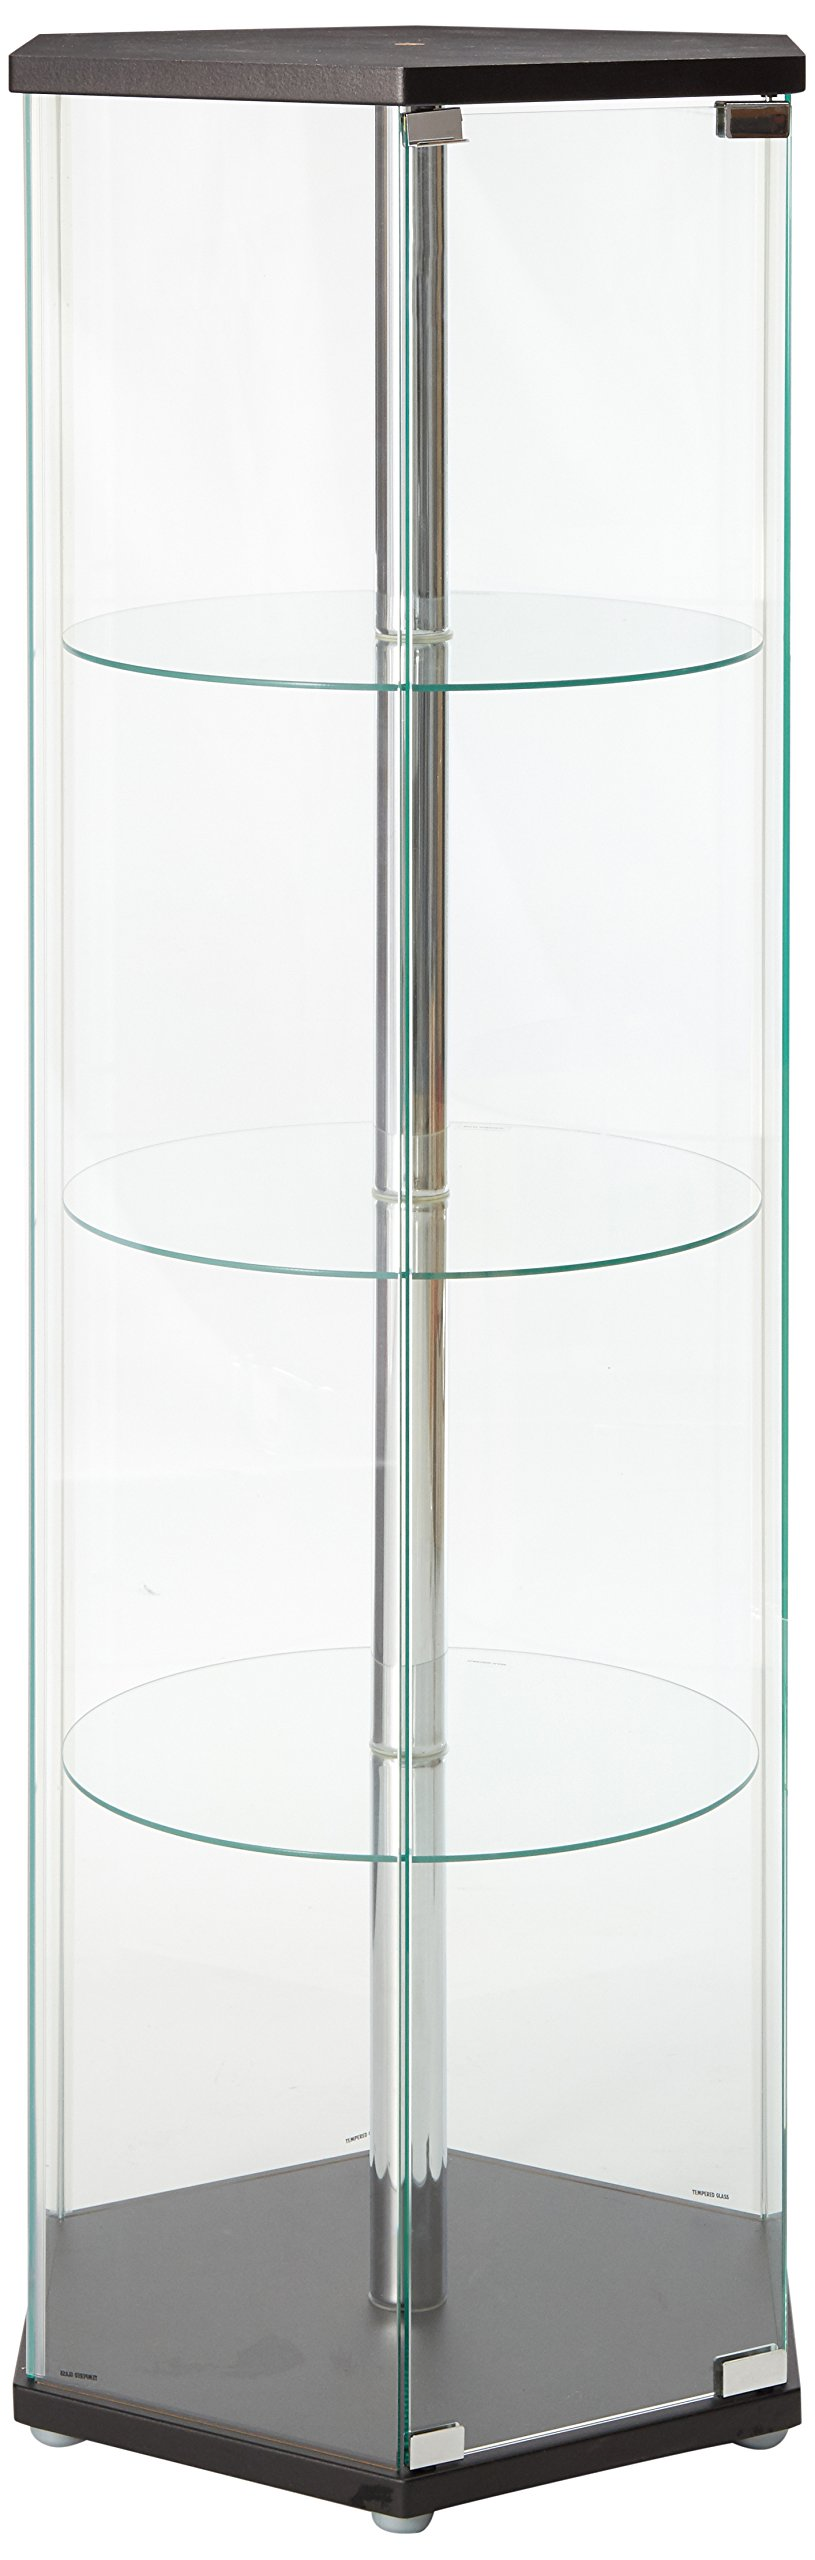 Hexagon Shaped Curio Cabinet Black and Clear by Coaster Home Furnishings